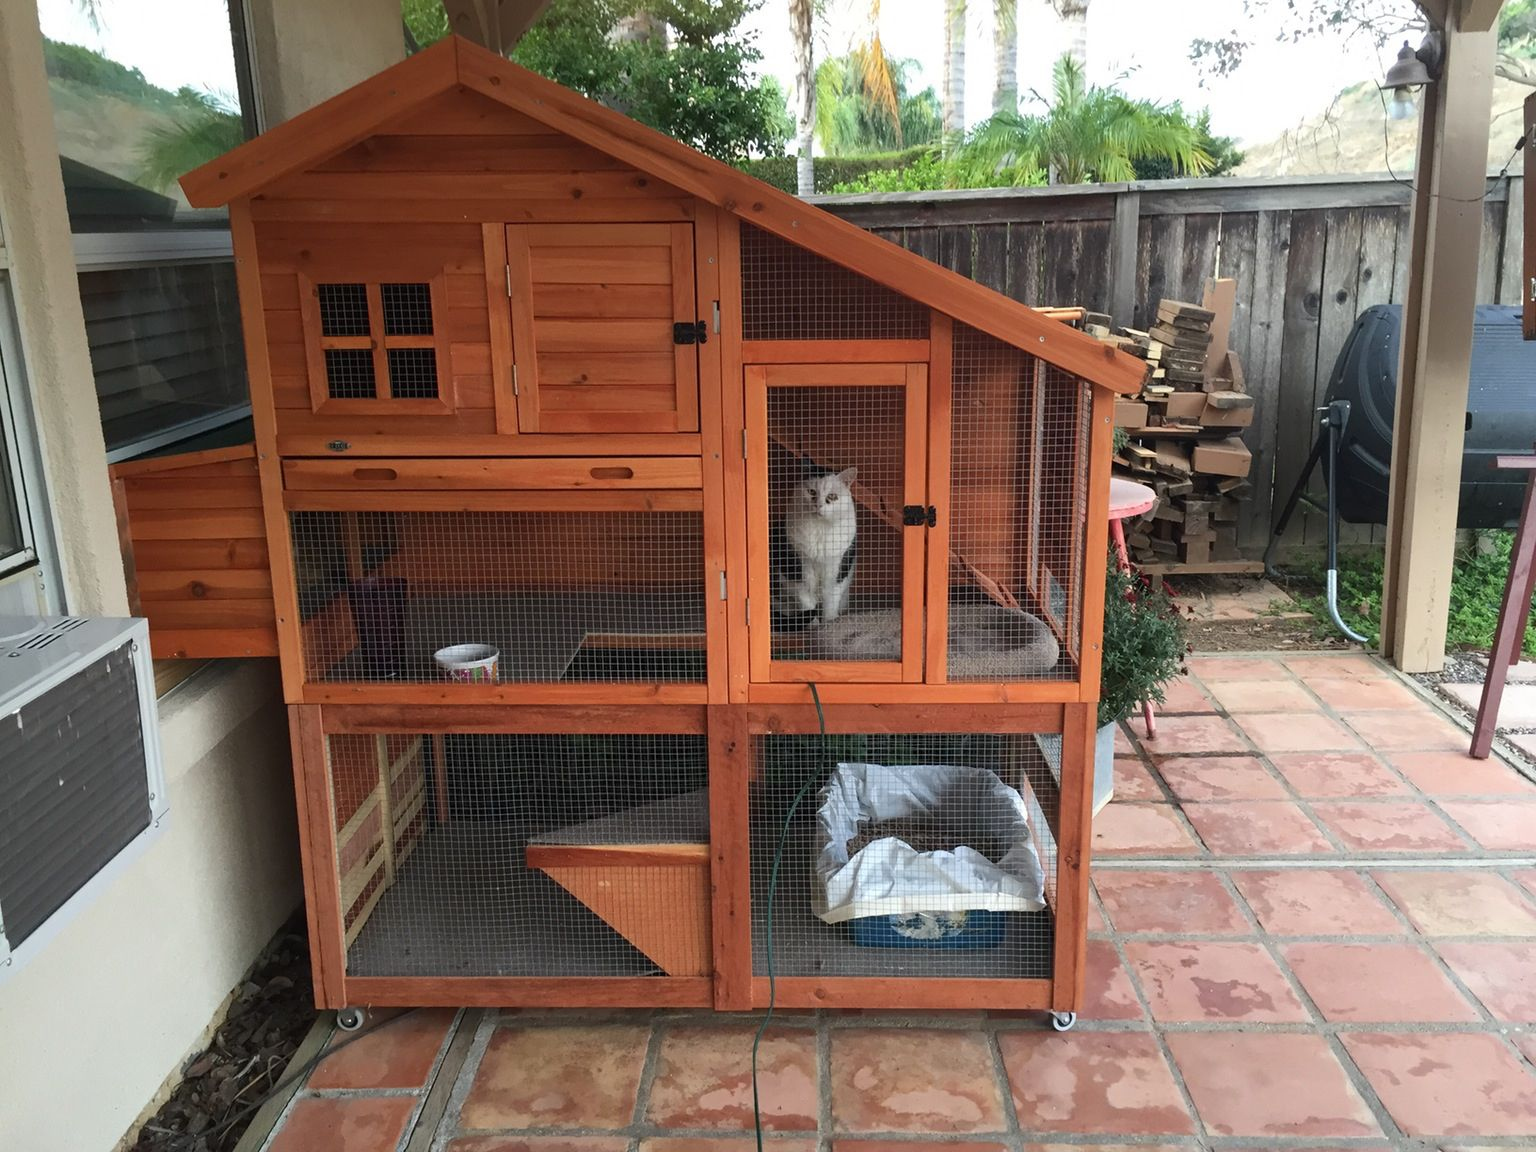 Balkon Teppich Coop Bought A Chicken Coop Raised It Up And Added A Floor It Opens